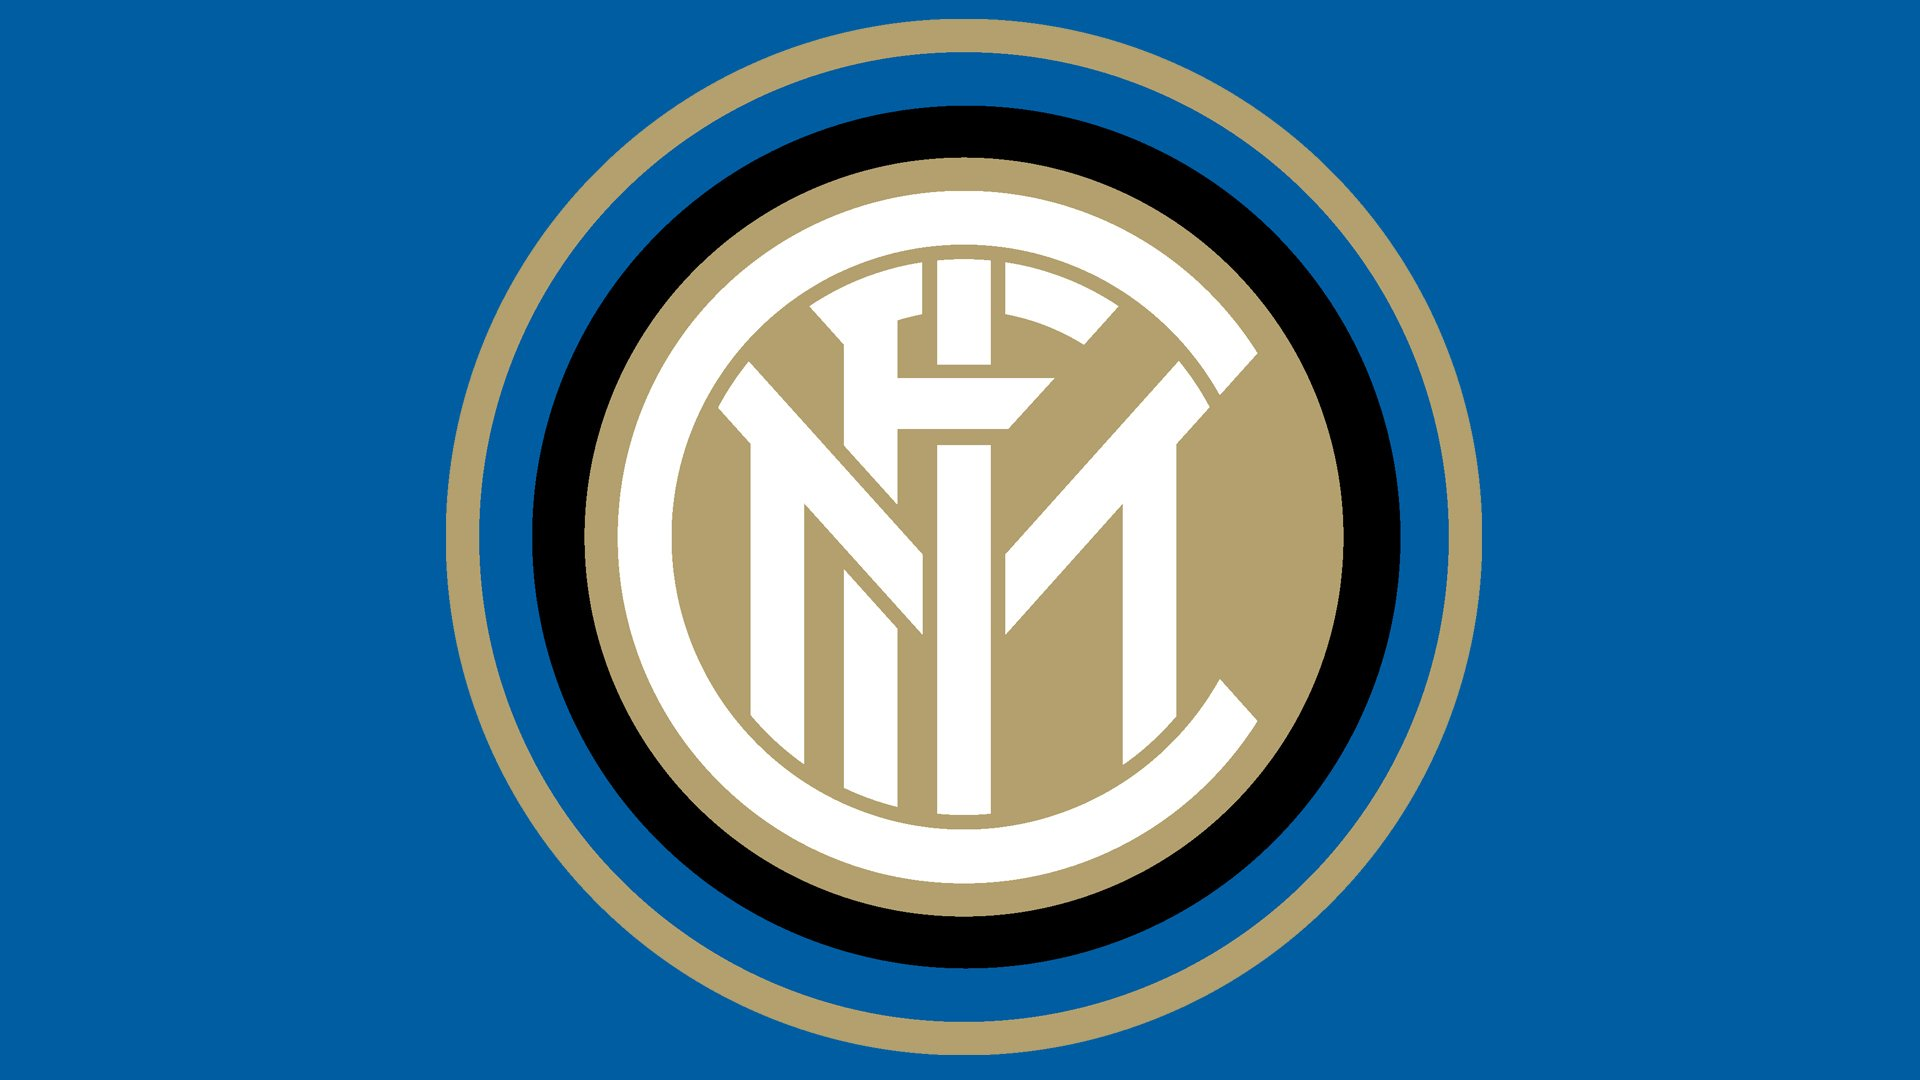 Internazionale Logo And Symbol Meaning History Png